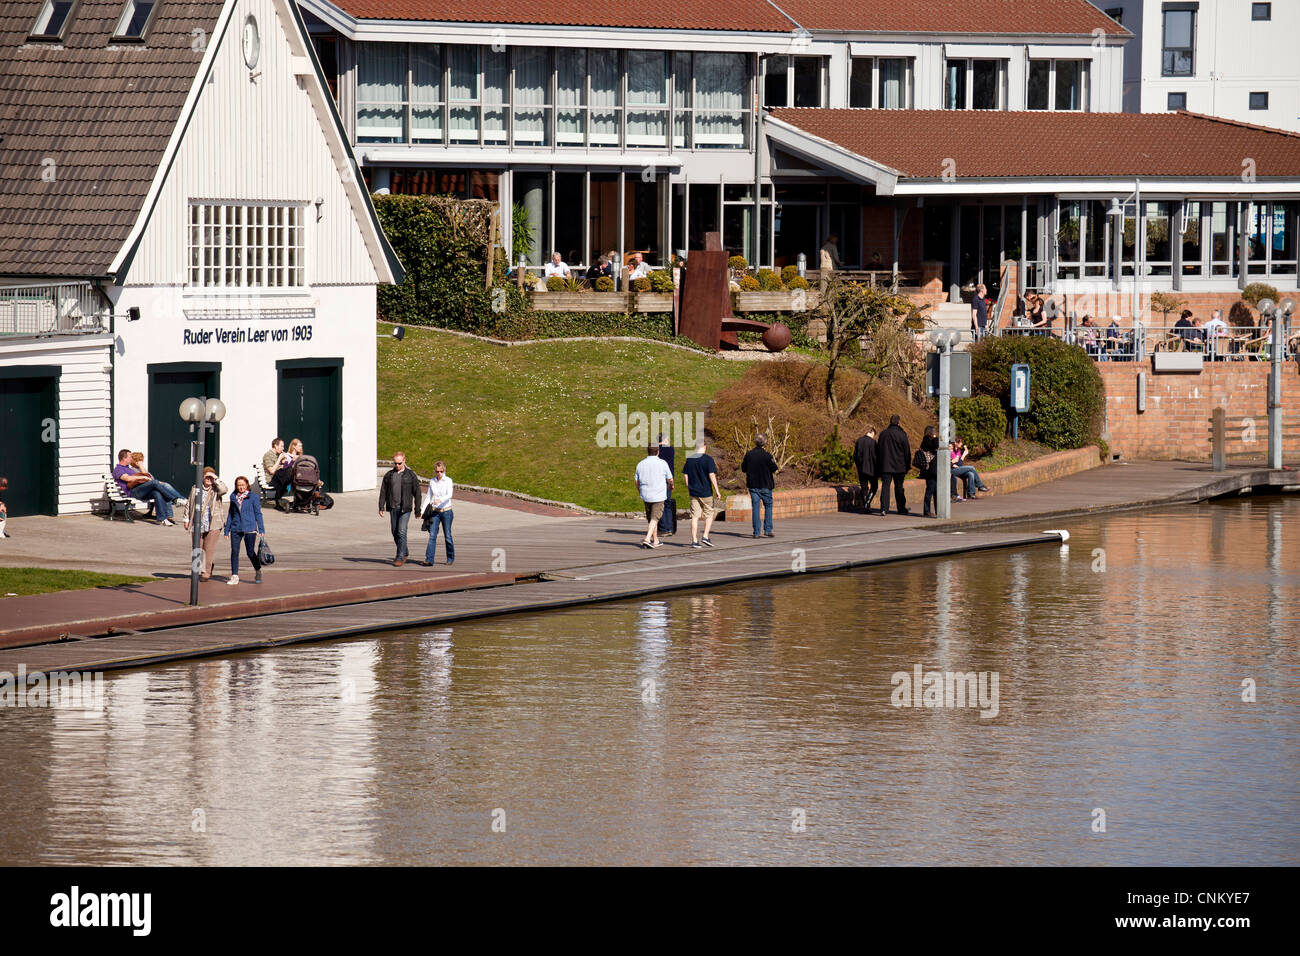 Ludwig-Klopp-Promenade at the harbour in Leer, East Frisia, Lower Saxony, Germany - Stock Image